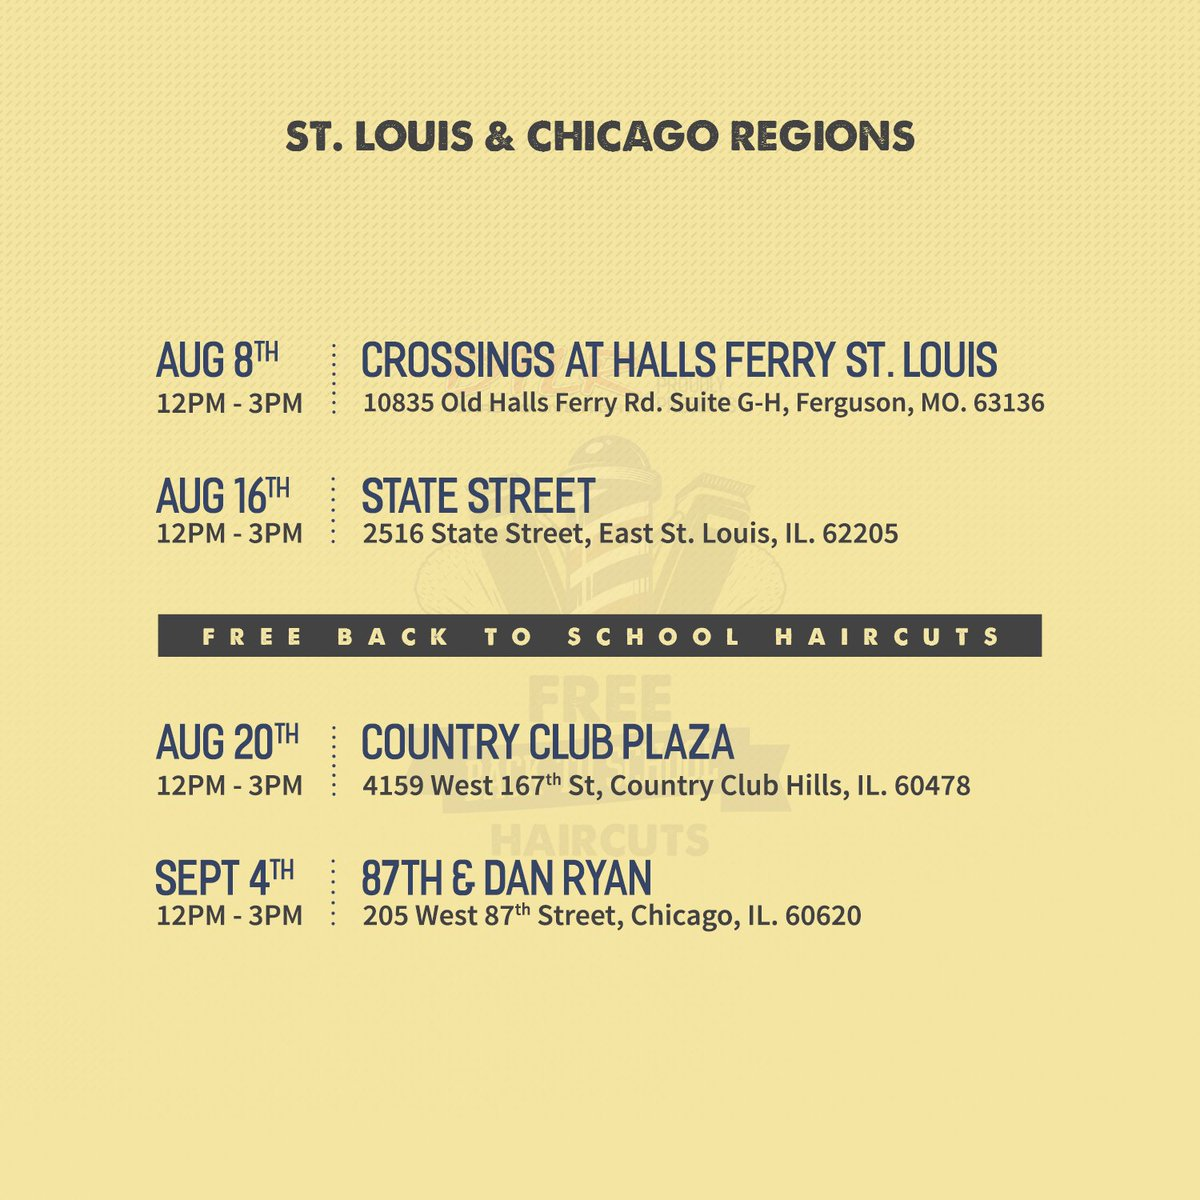 #CHI & #STLouis Bring the kids by #DTLR for a #FREE haircut | 4 Locations | 4 Dates #Daretoliveright #Back2School #Haircuts #Community #Kids https://t.co/QsH9fUGe5f